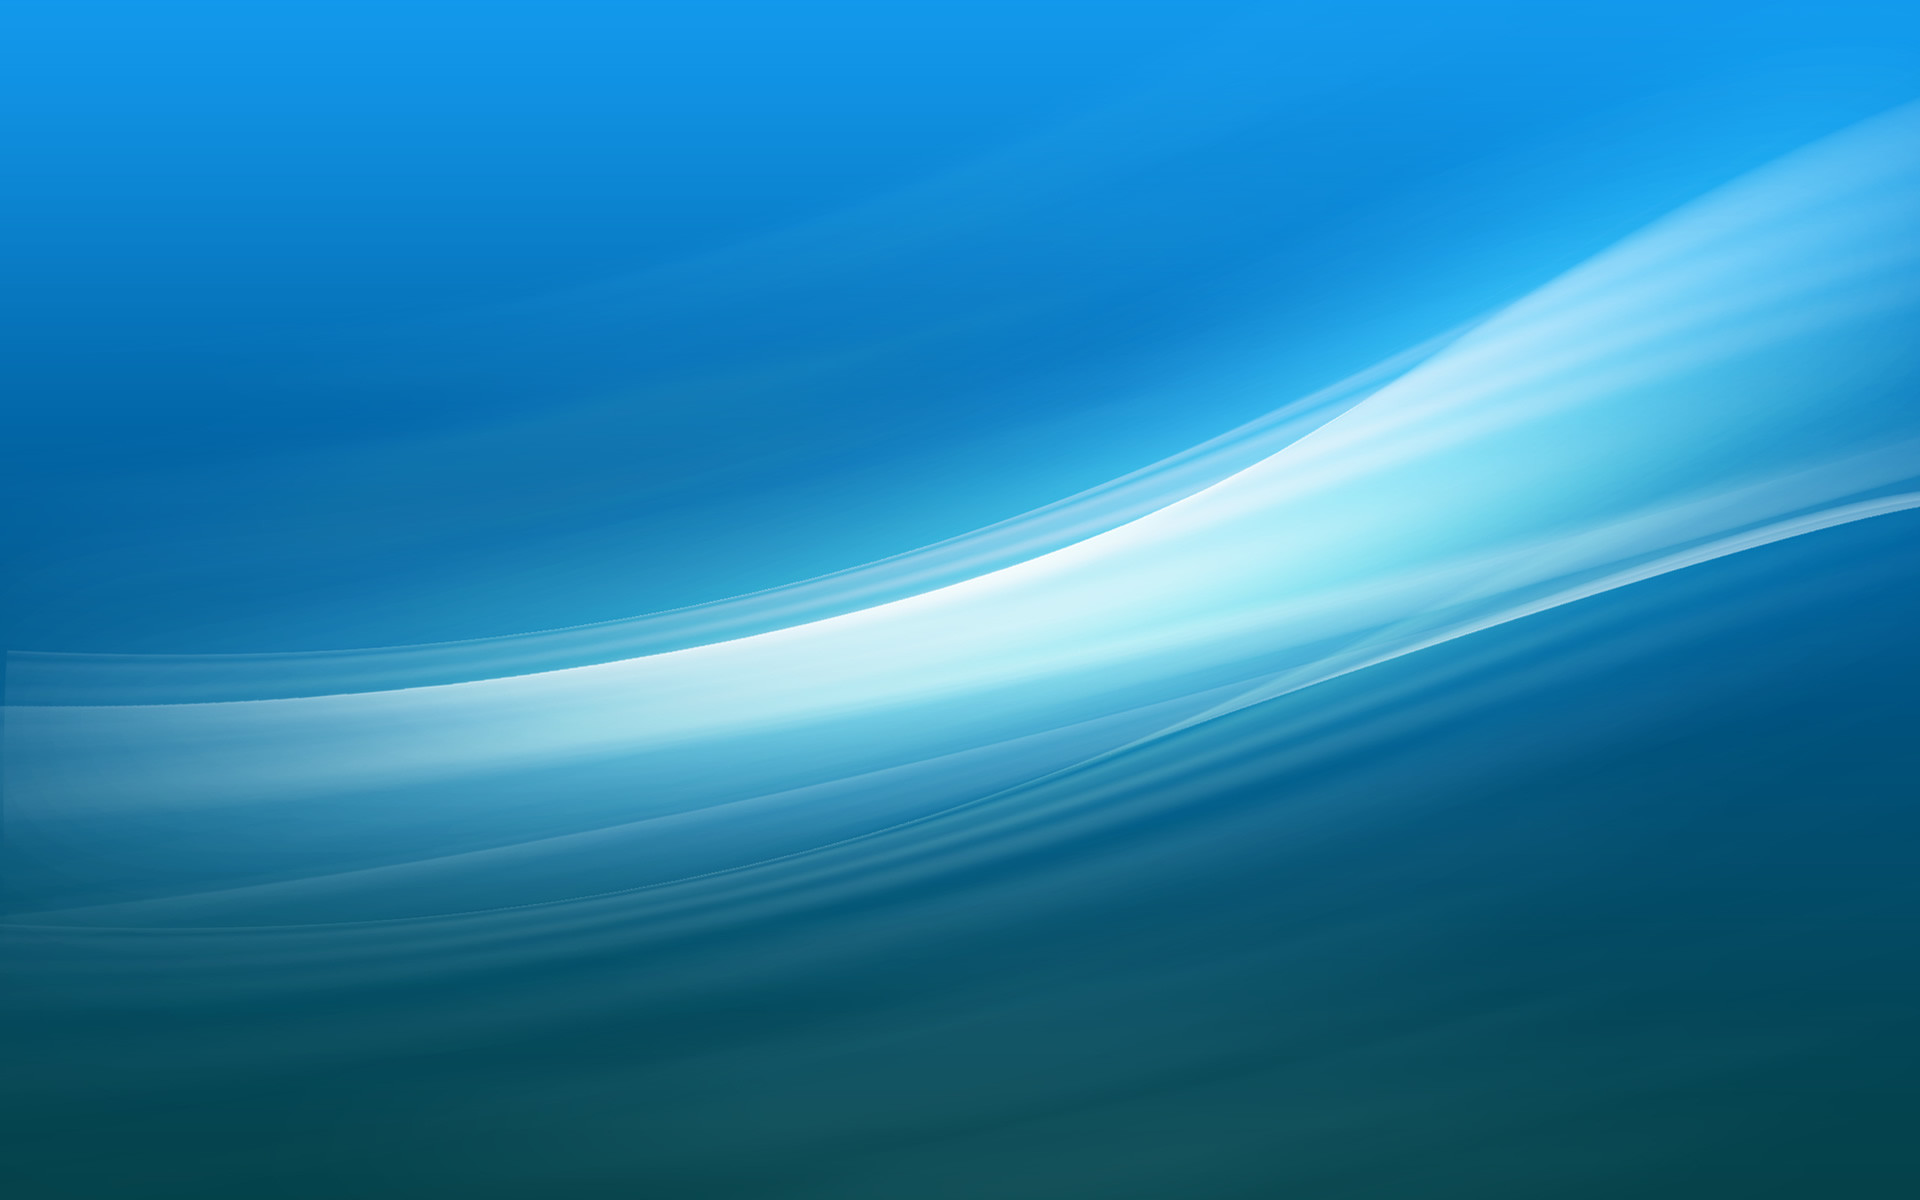 1920x1200 All Blue Wallpaper Desktop Wallpapers Blue Wallpapers)